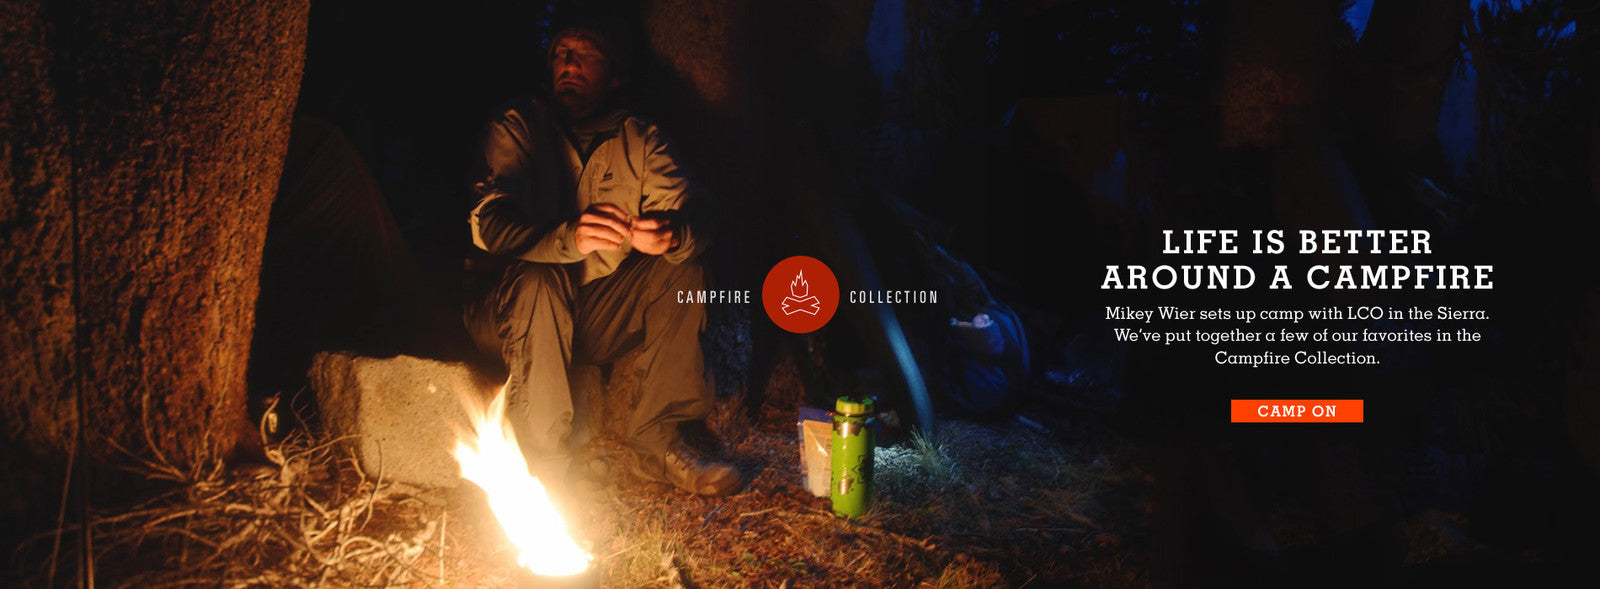 Lost Coast Outfitters Campfire Collection